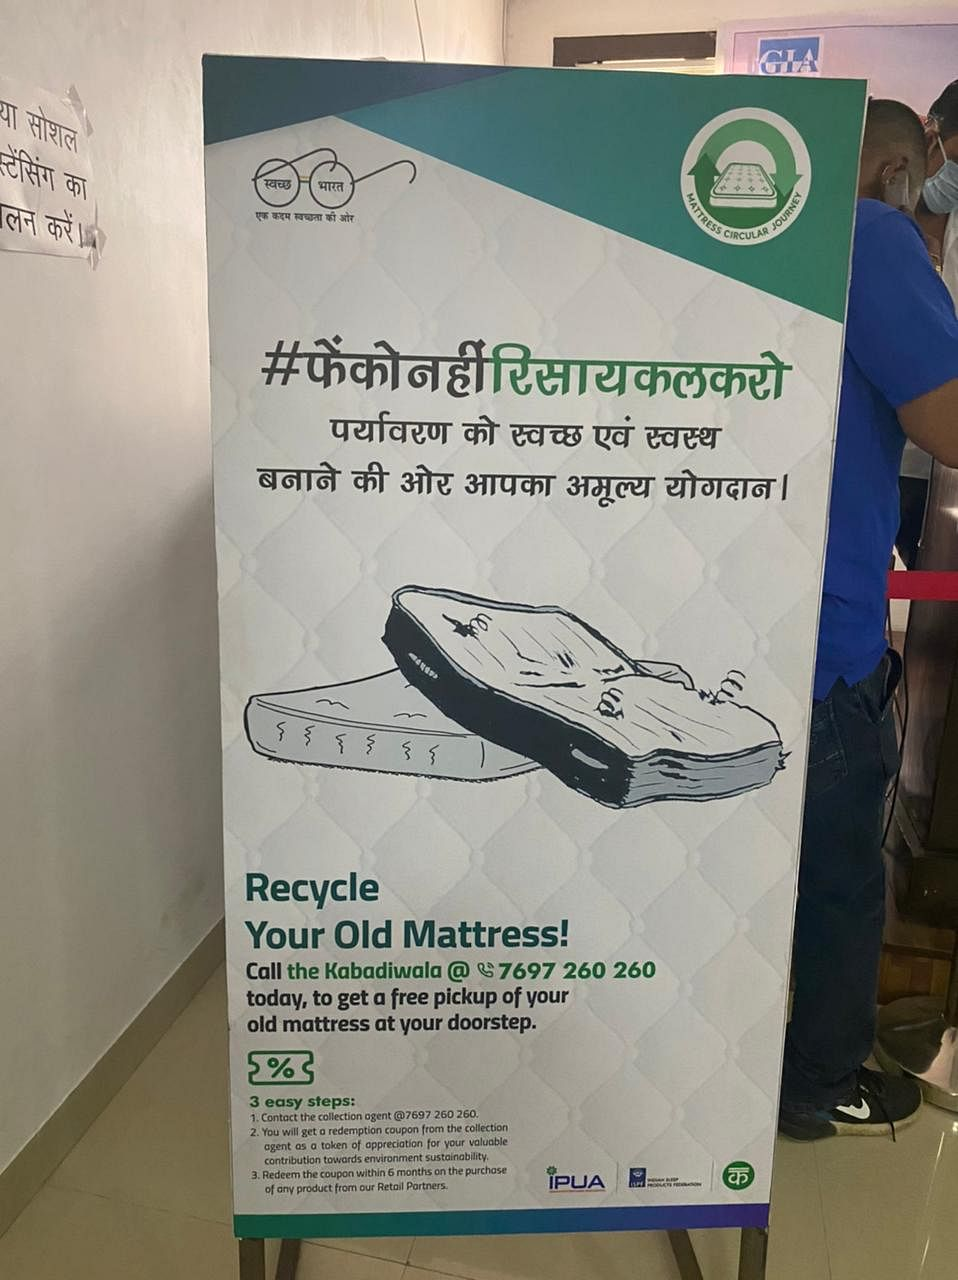 Mattresses need redemption: India's first mattress recycling campaign launched in Bhopal